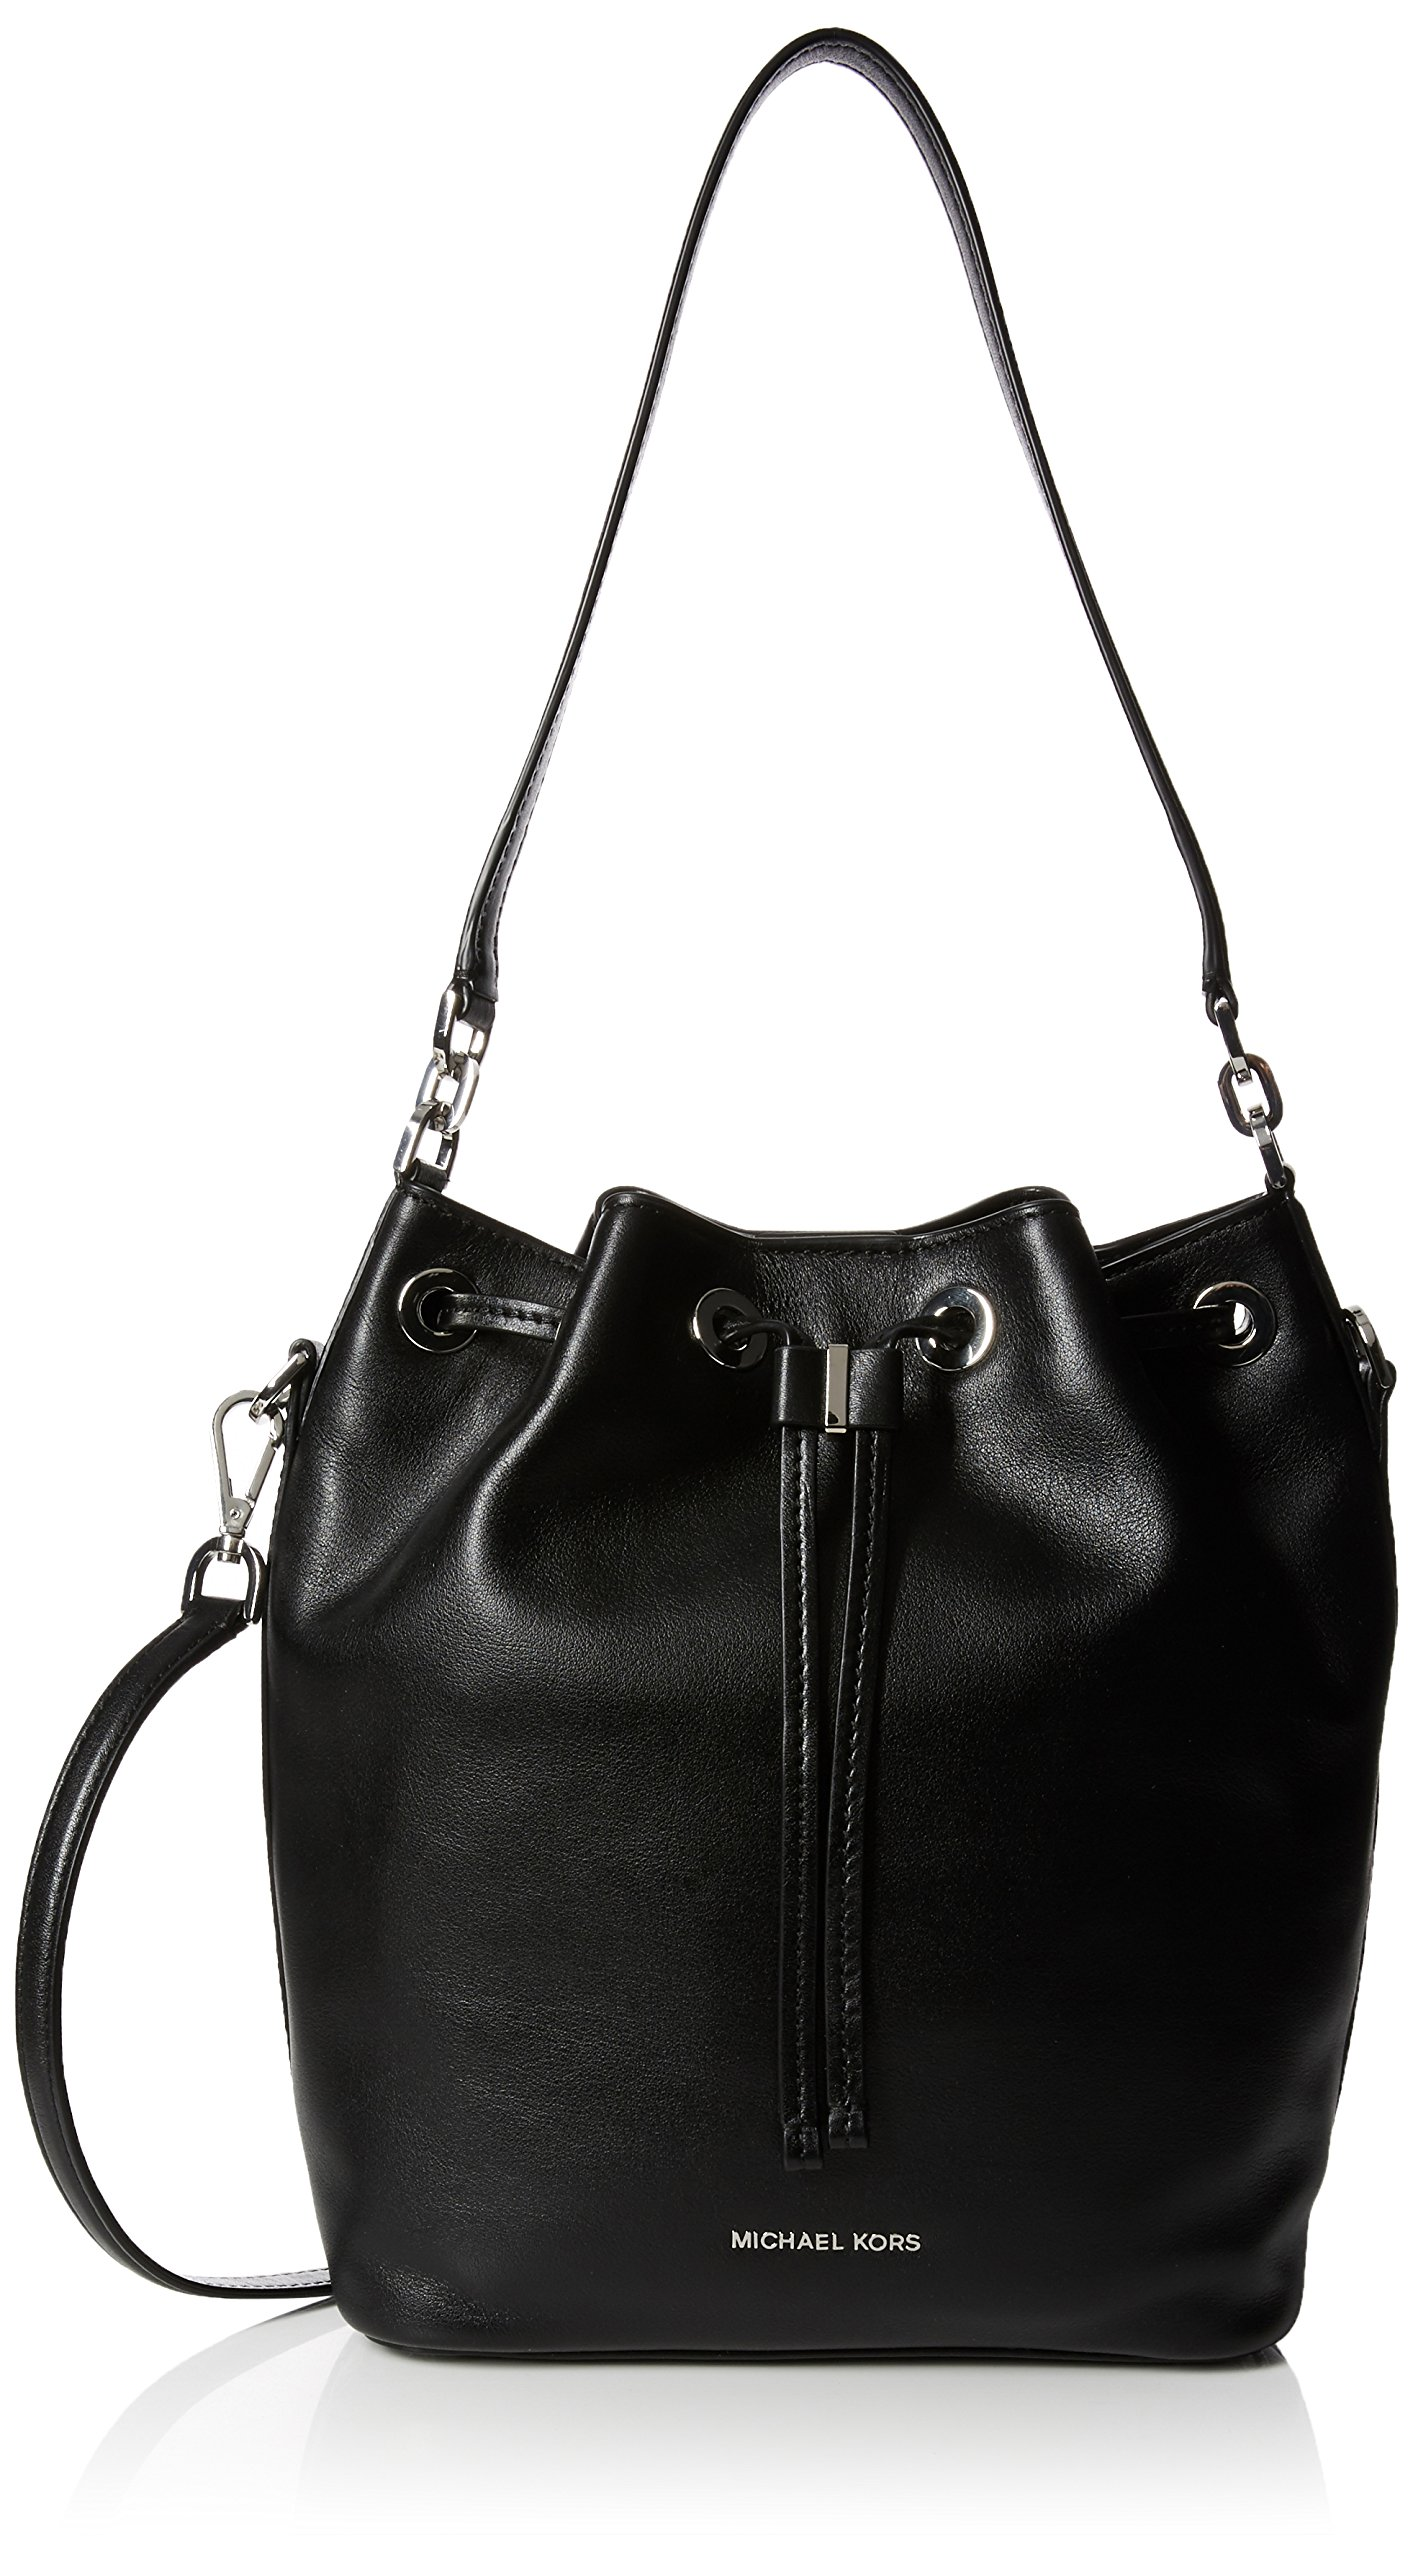 Michael Kors Womens Dottie Leather Convertible Bucket Handbag Black Large by Michael Kors